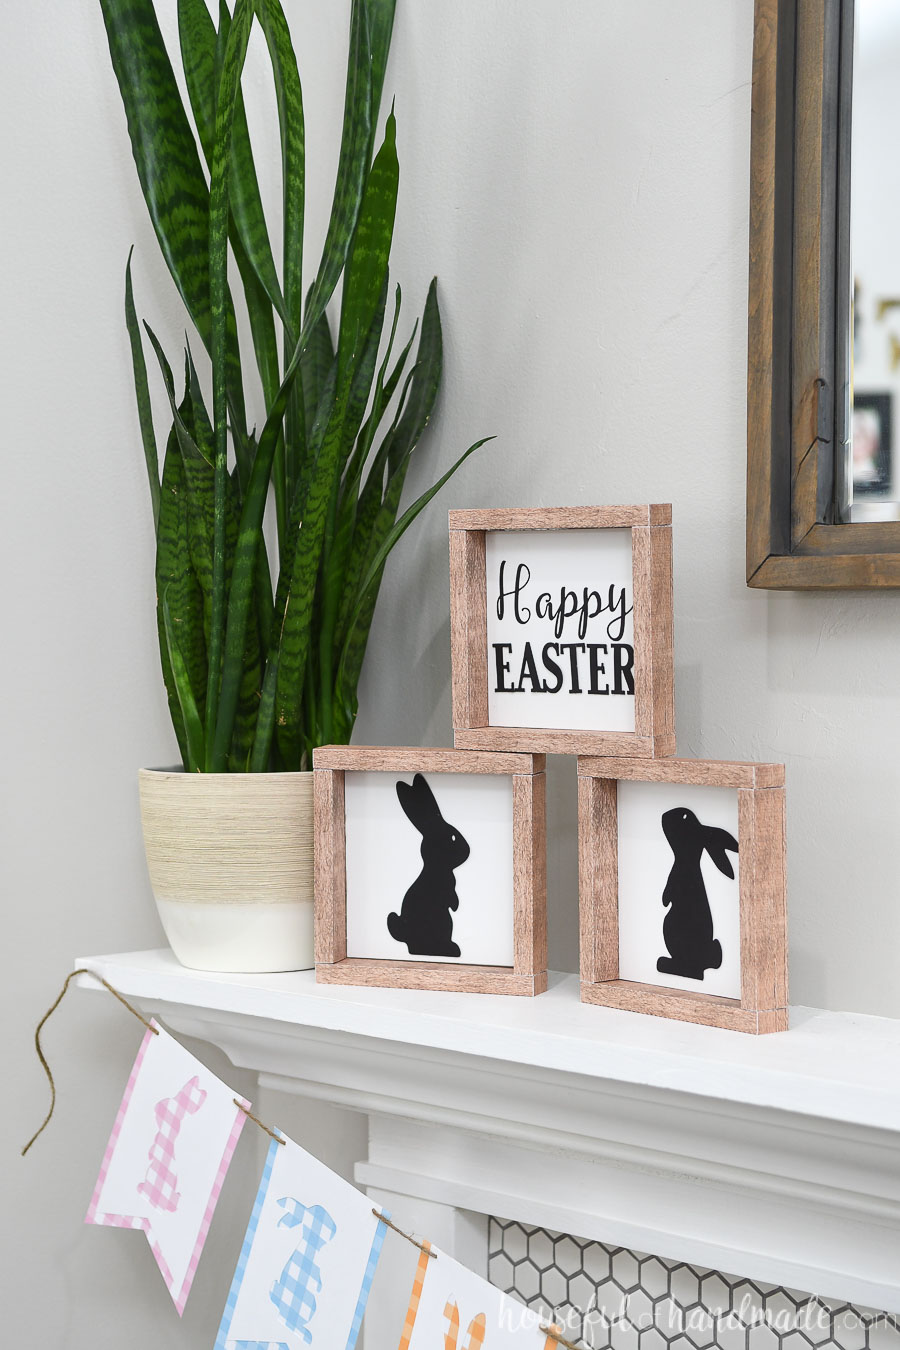 Fireplace mantel decorate with Easter signs for spring.